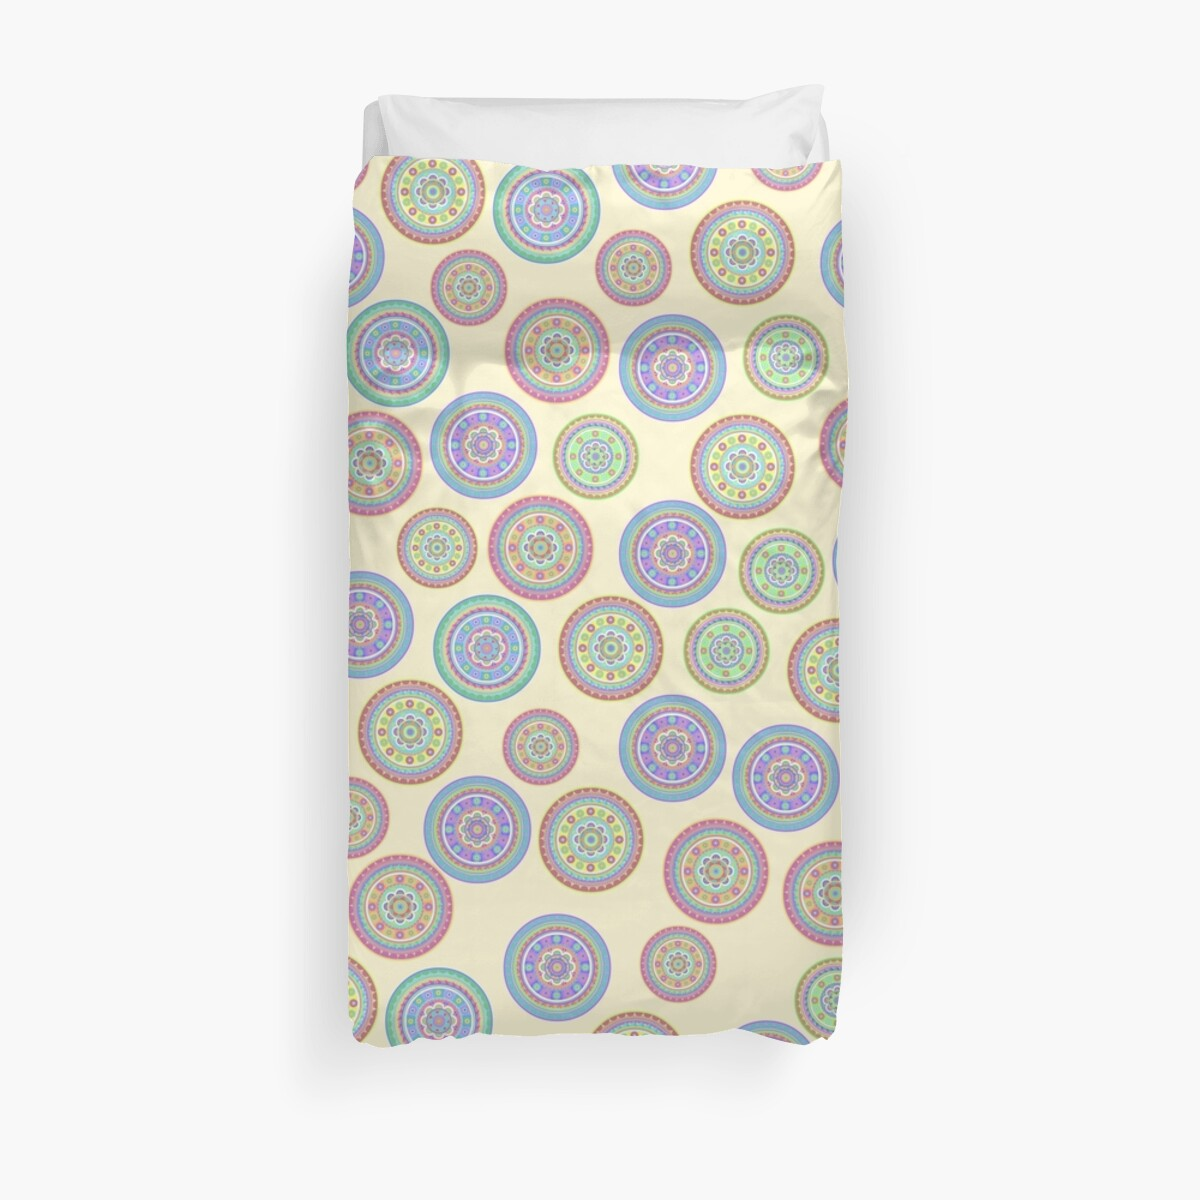 Quot Zentangle Quot Duvet Covers By Alapapaju Redbubble